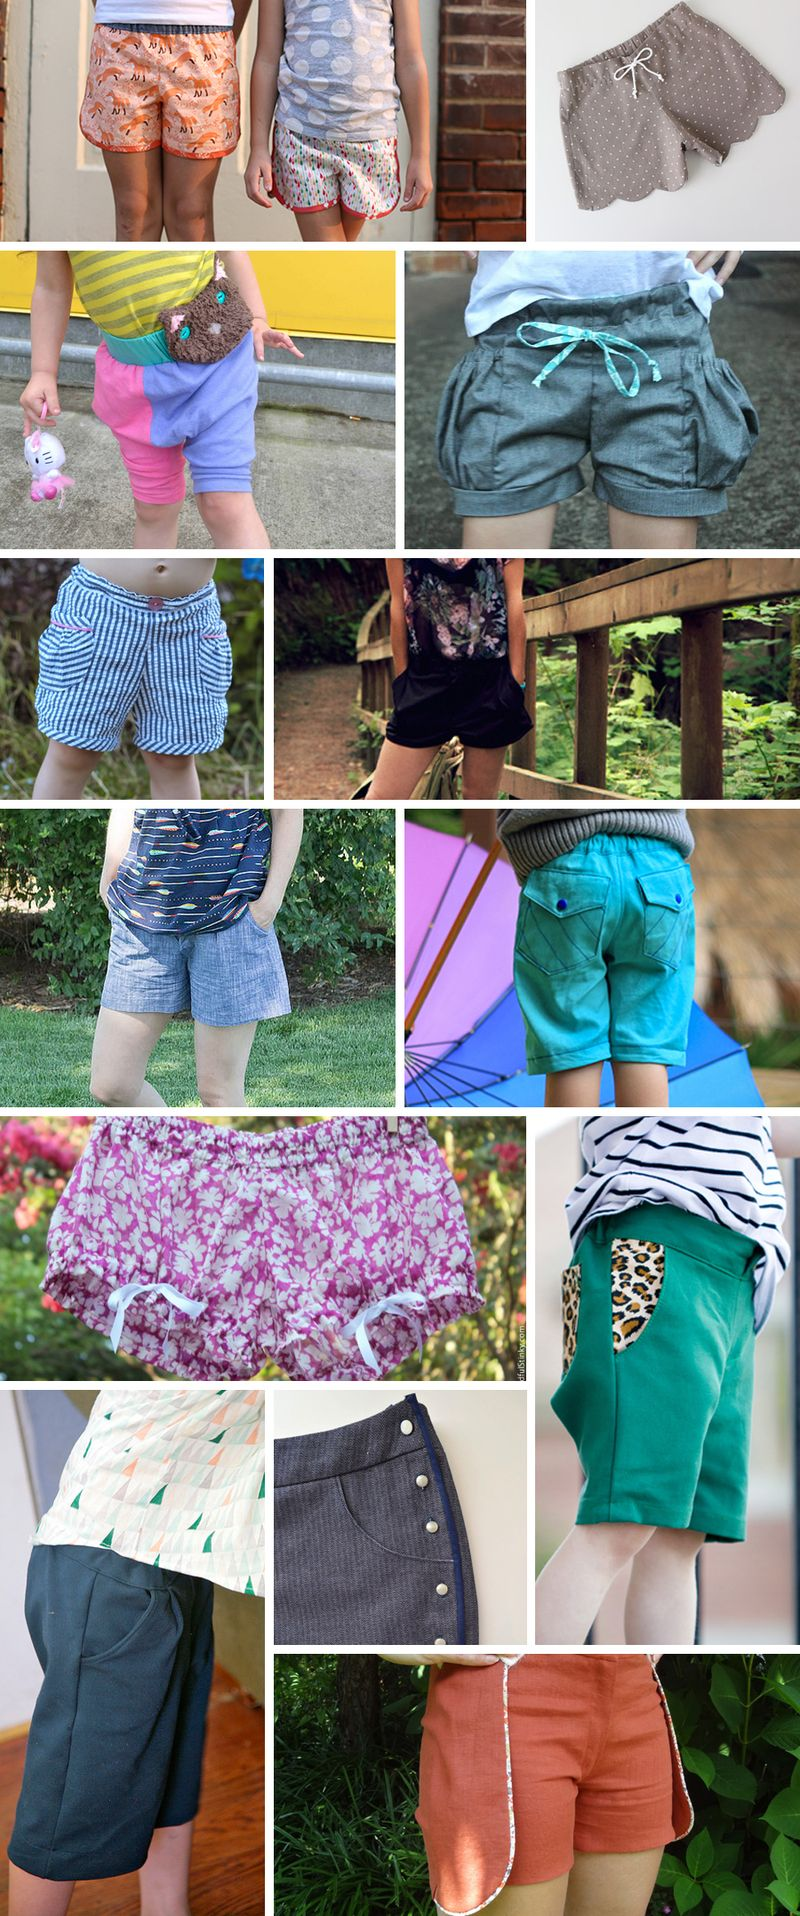 Shorts on the Line Guest Posts Week 1